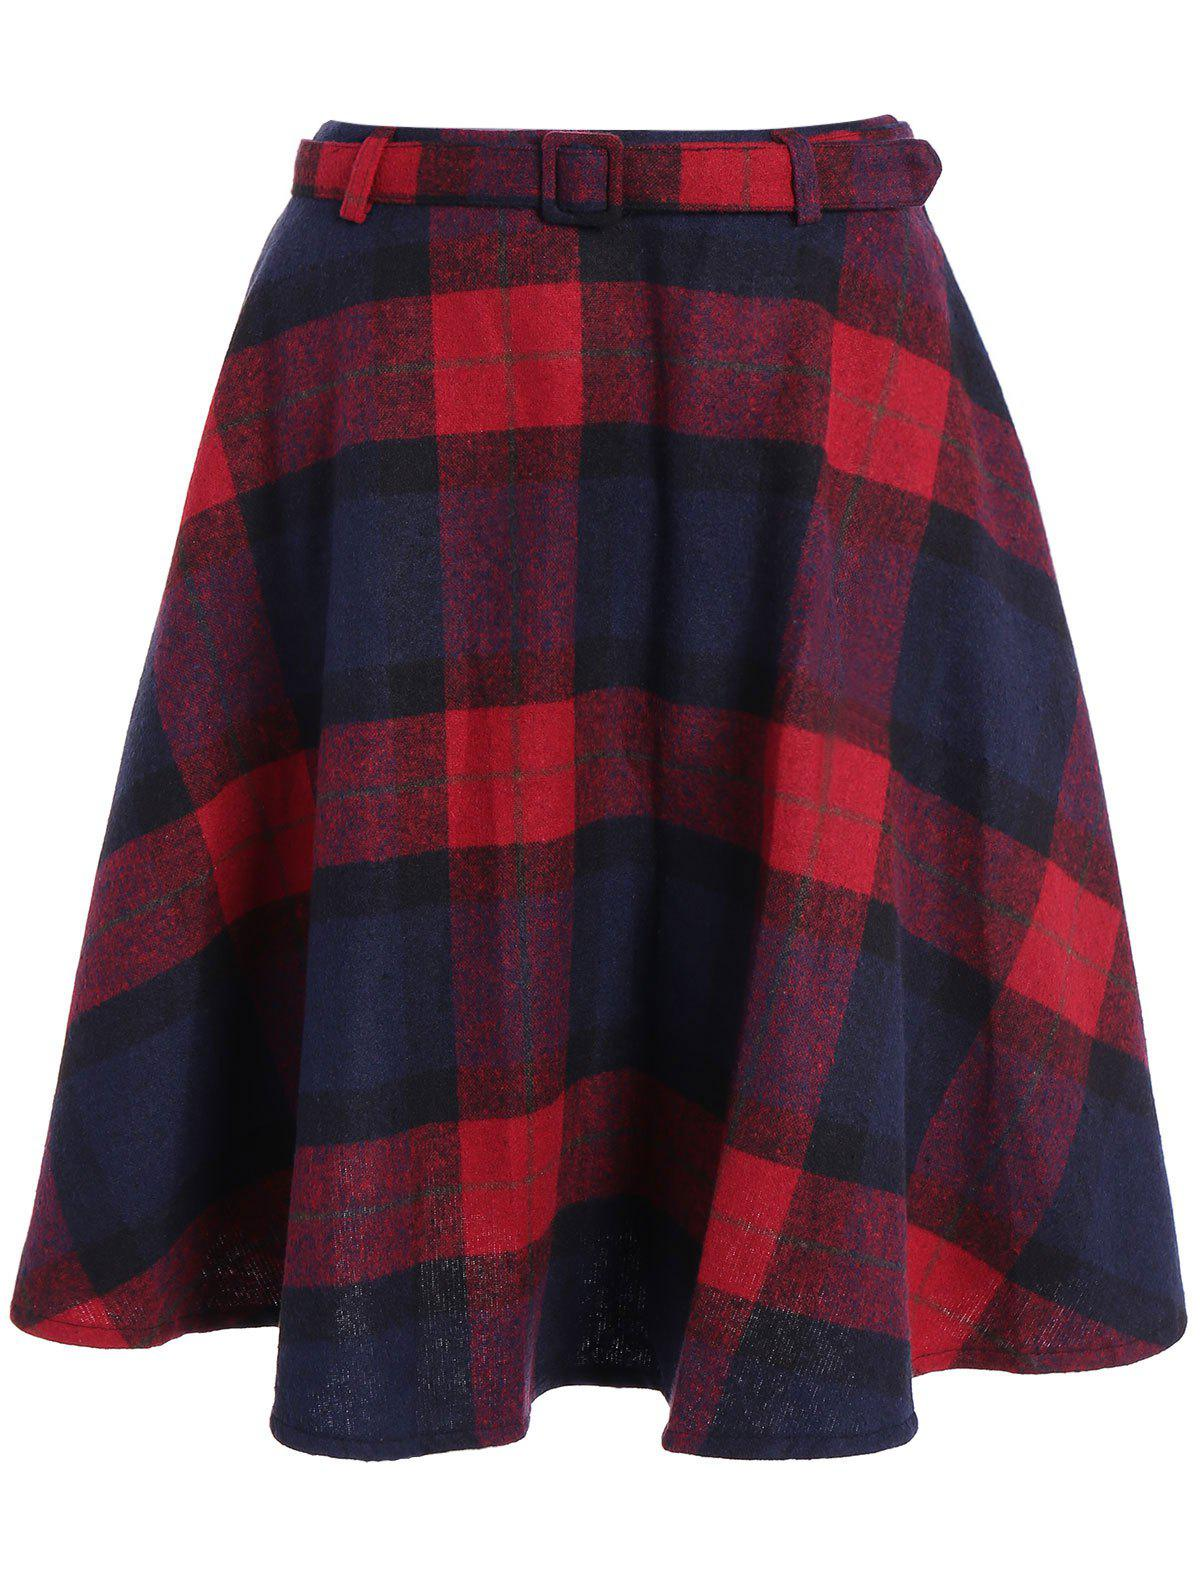 Pocket Design High-Waisted Plaid Skirt - RED L